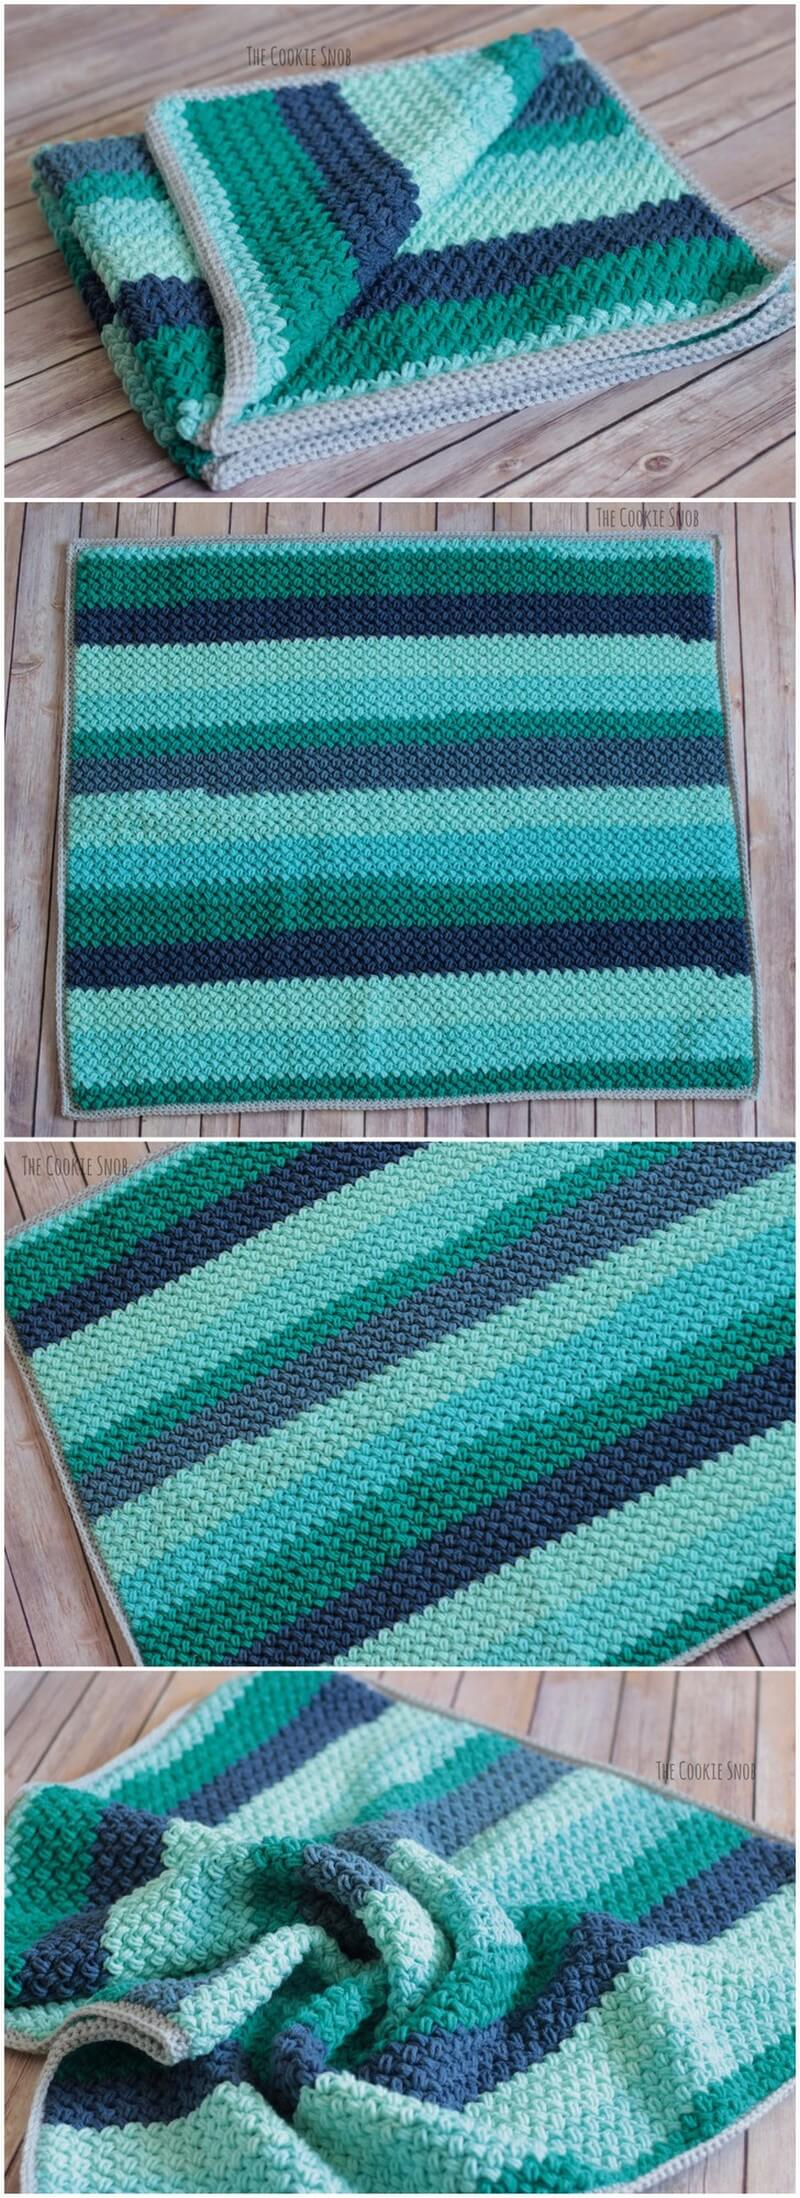 Easy Crochet Blanket Pattern (7)